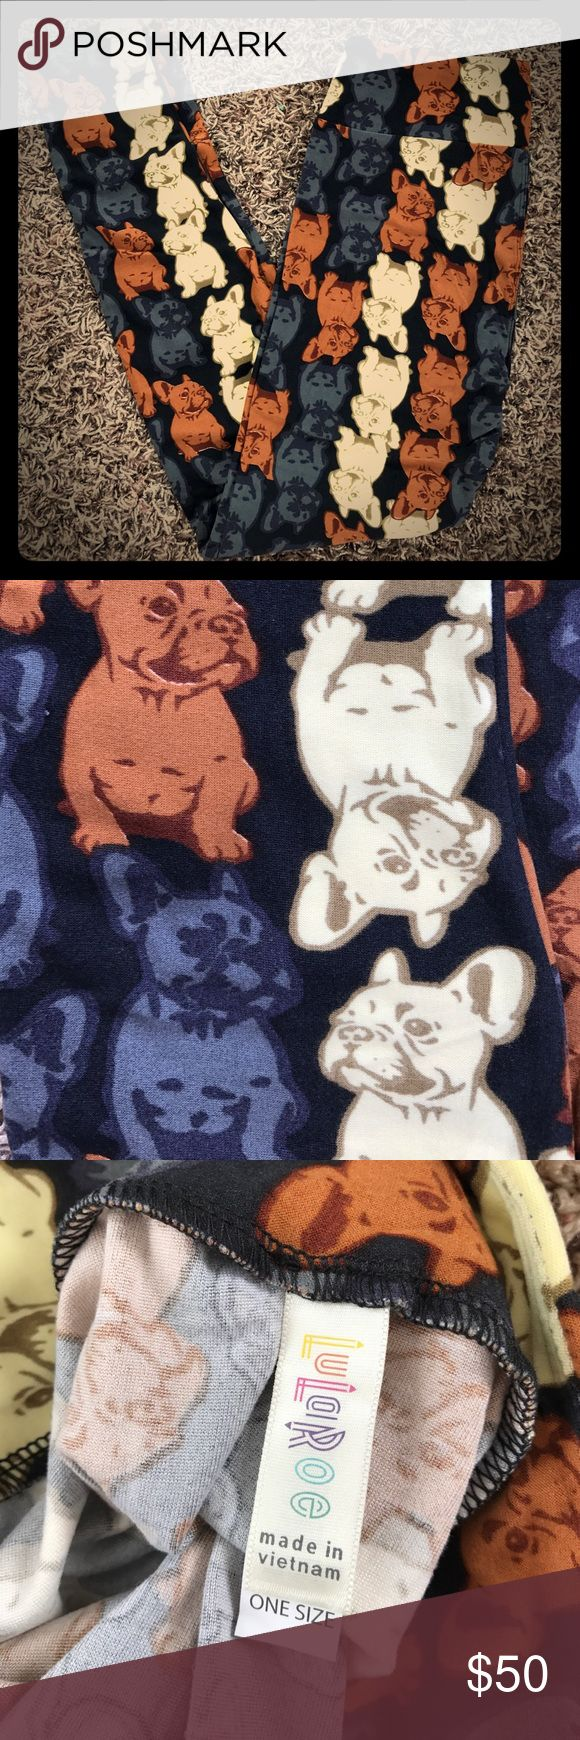 🦄 French Bulldog Leggings 🦄 LOWEST PRICE ON POSHMARK for these leggings. Cutest bulldog leggings ever! These are BNWT, never even tried on. They have a black background, with cream, brown, and gray puppies. Hard to find print...these sell fast! I bought a few too many, and need to downsize my collection. LuLaRoe Pants Leggings